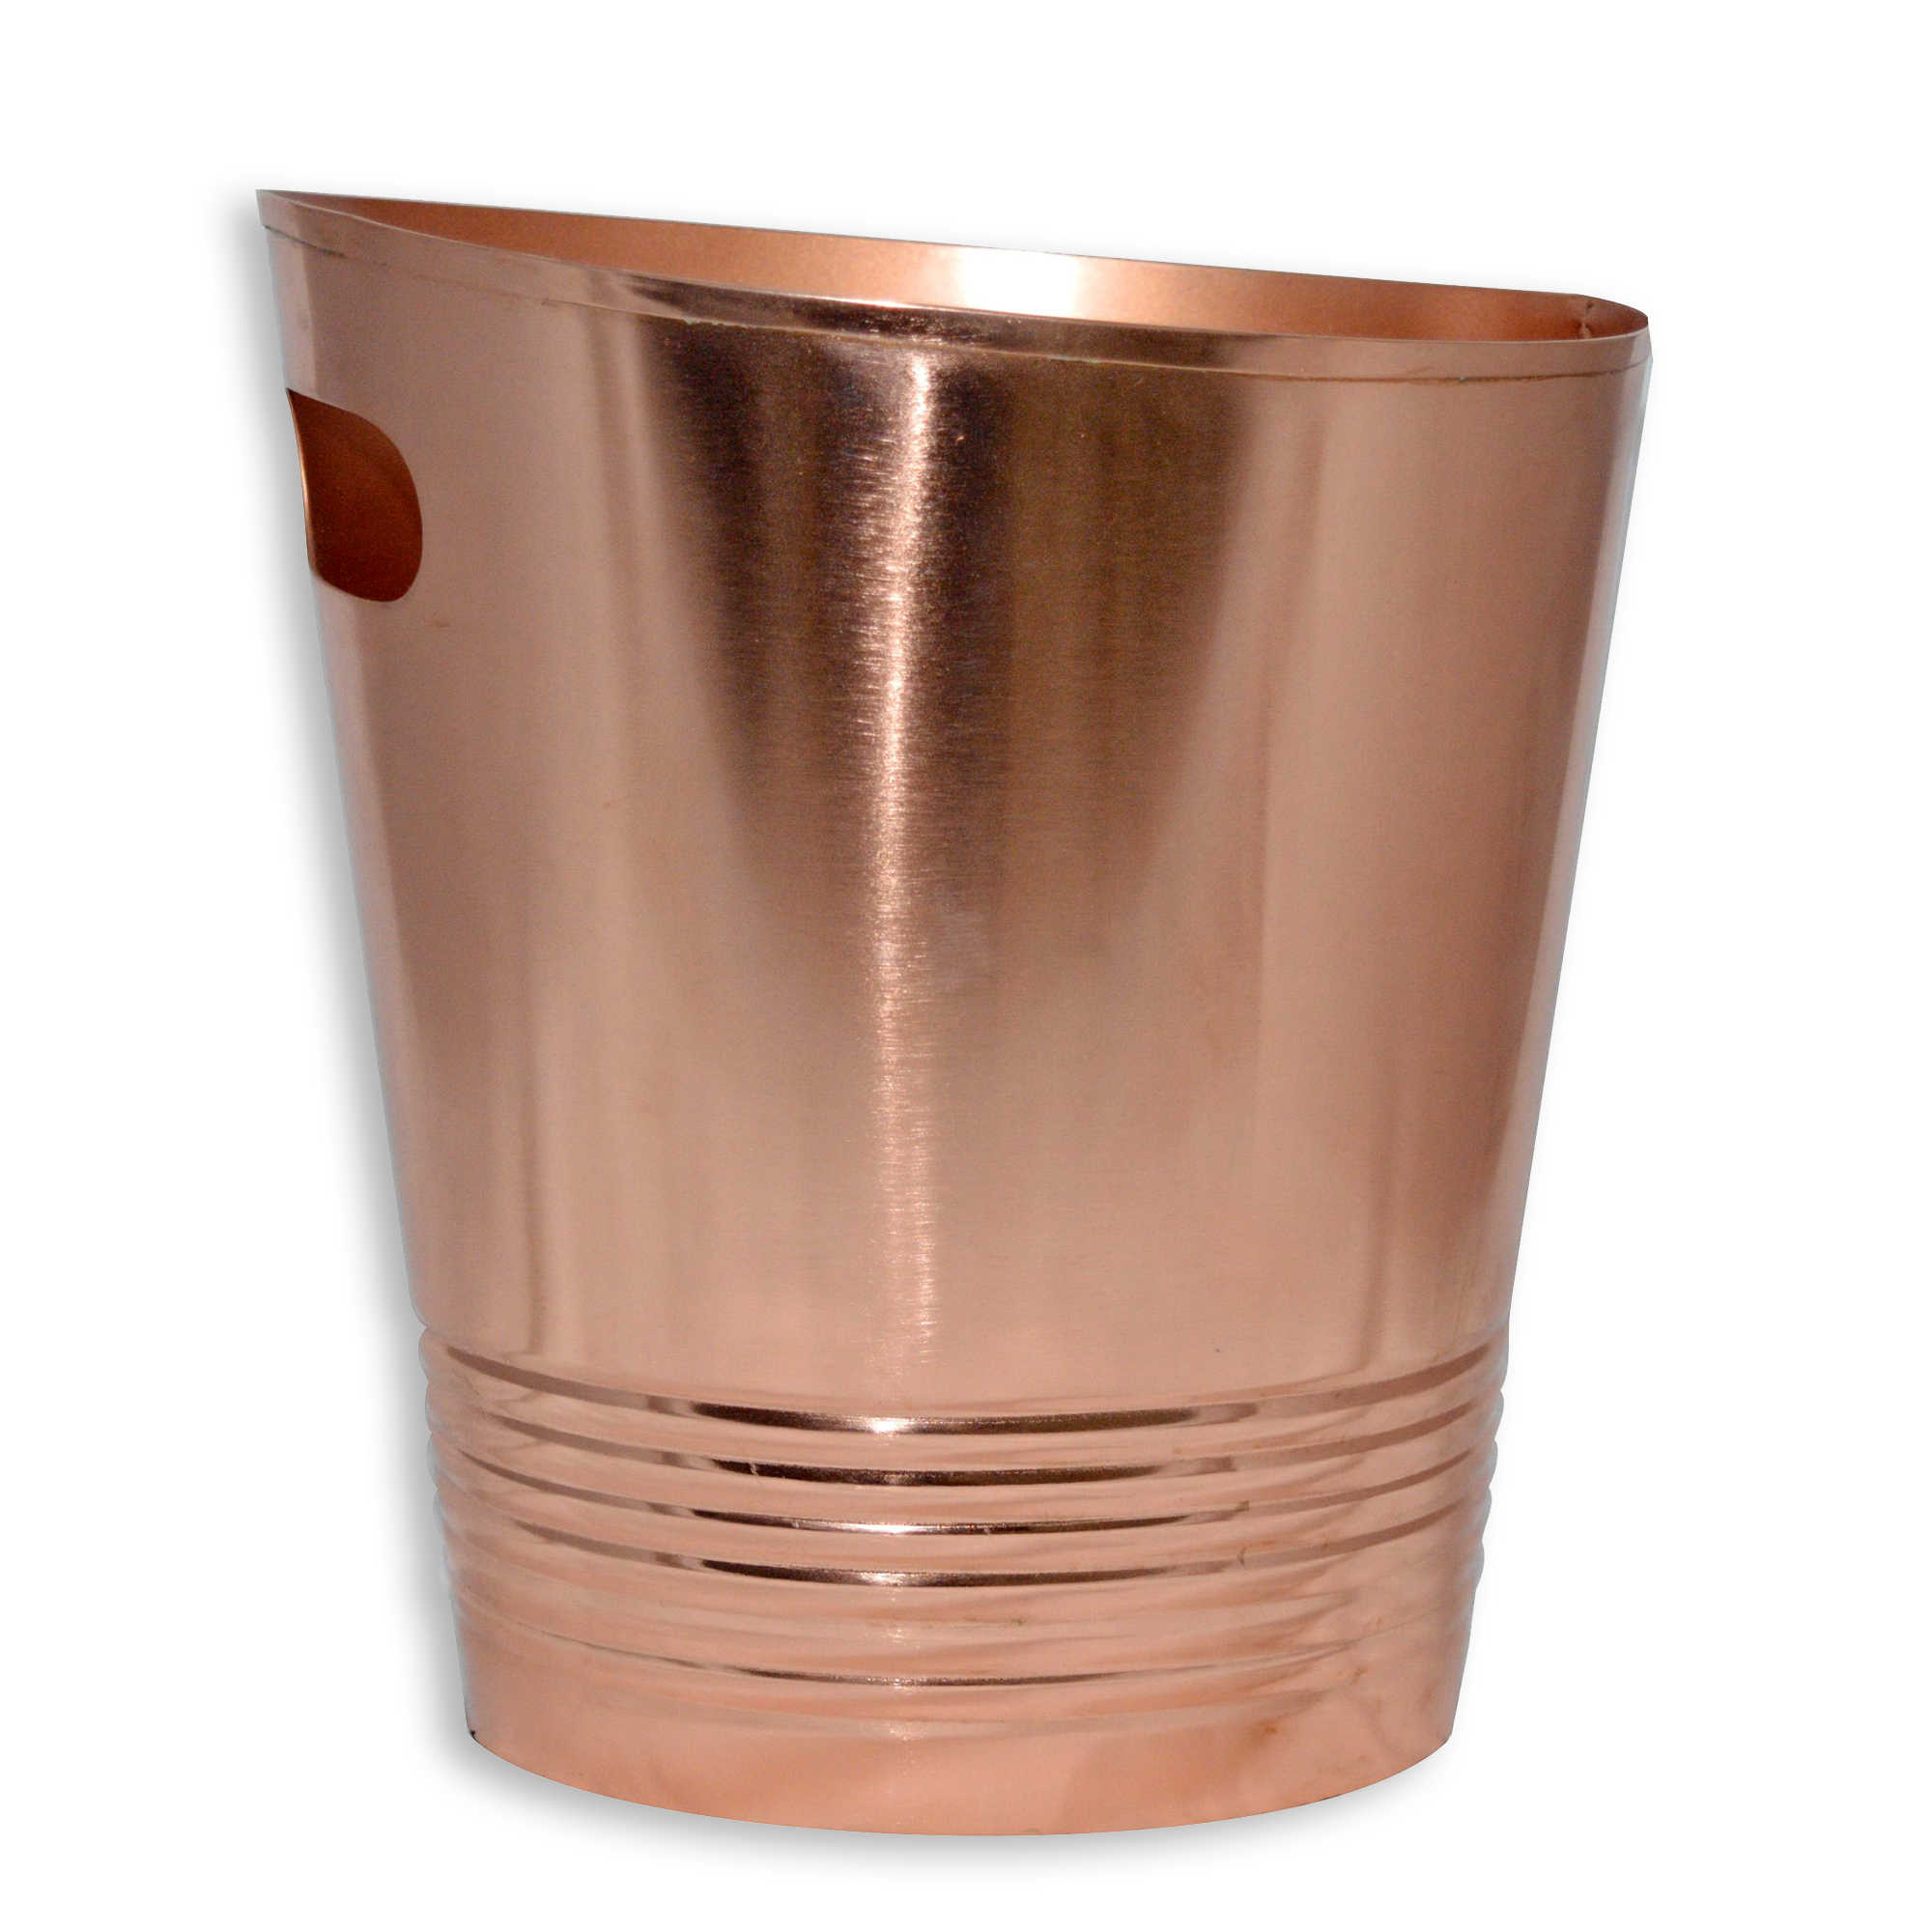 Copper Trash Can With Lid Stylish Small Bathroom Trash Cans For 15 Or Less Apartment Therapy